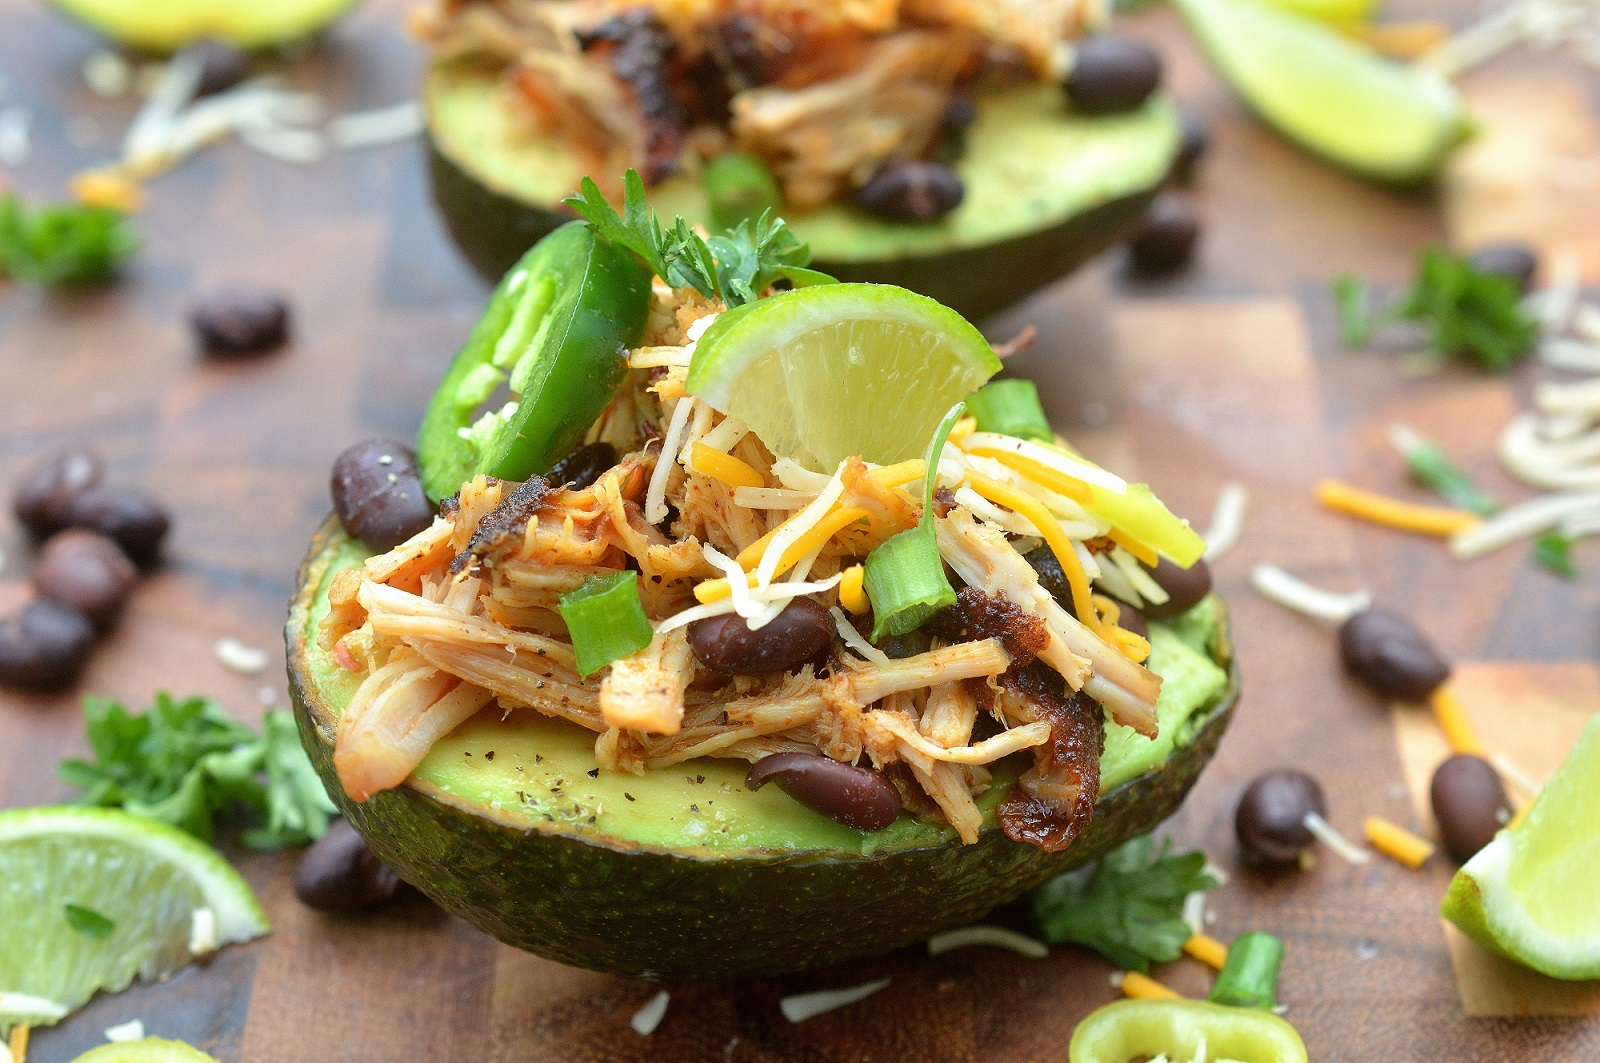 Pulled Pork Avocados